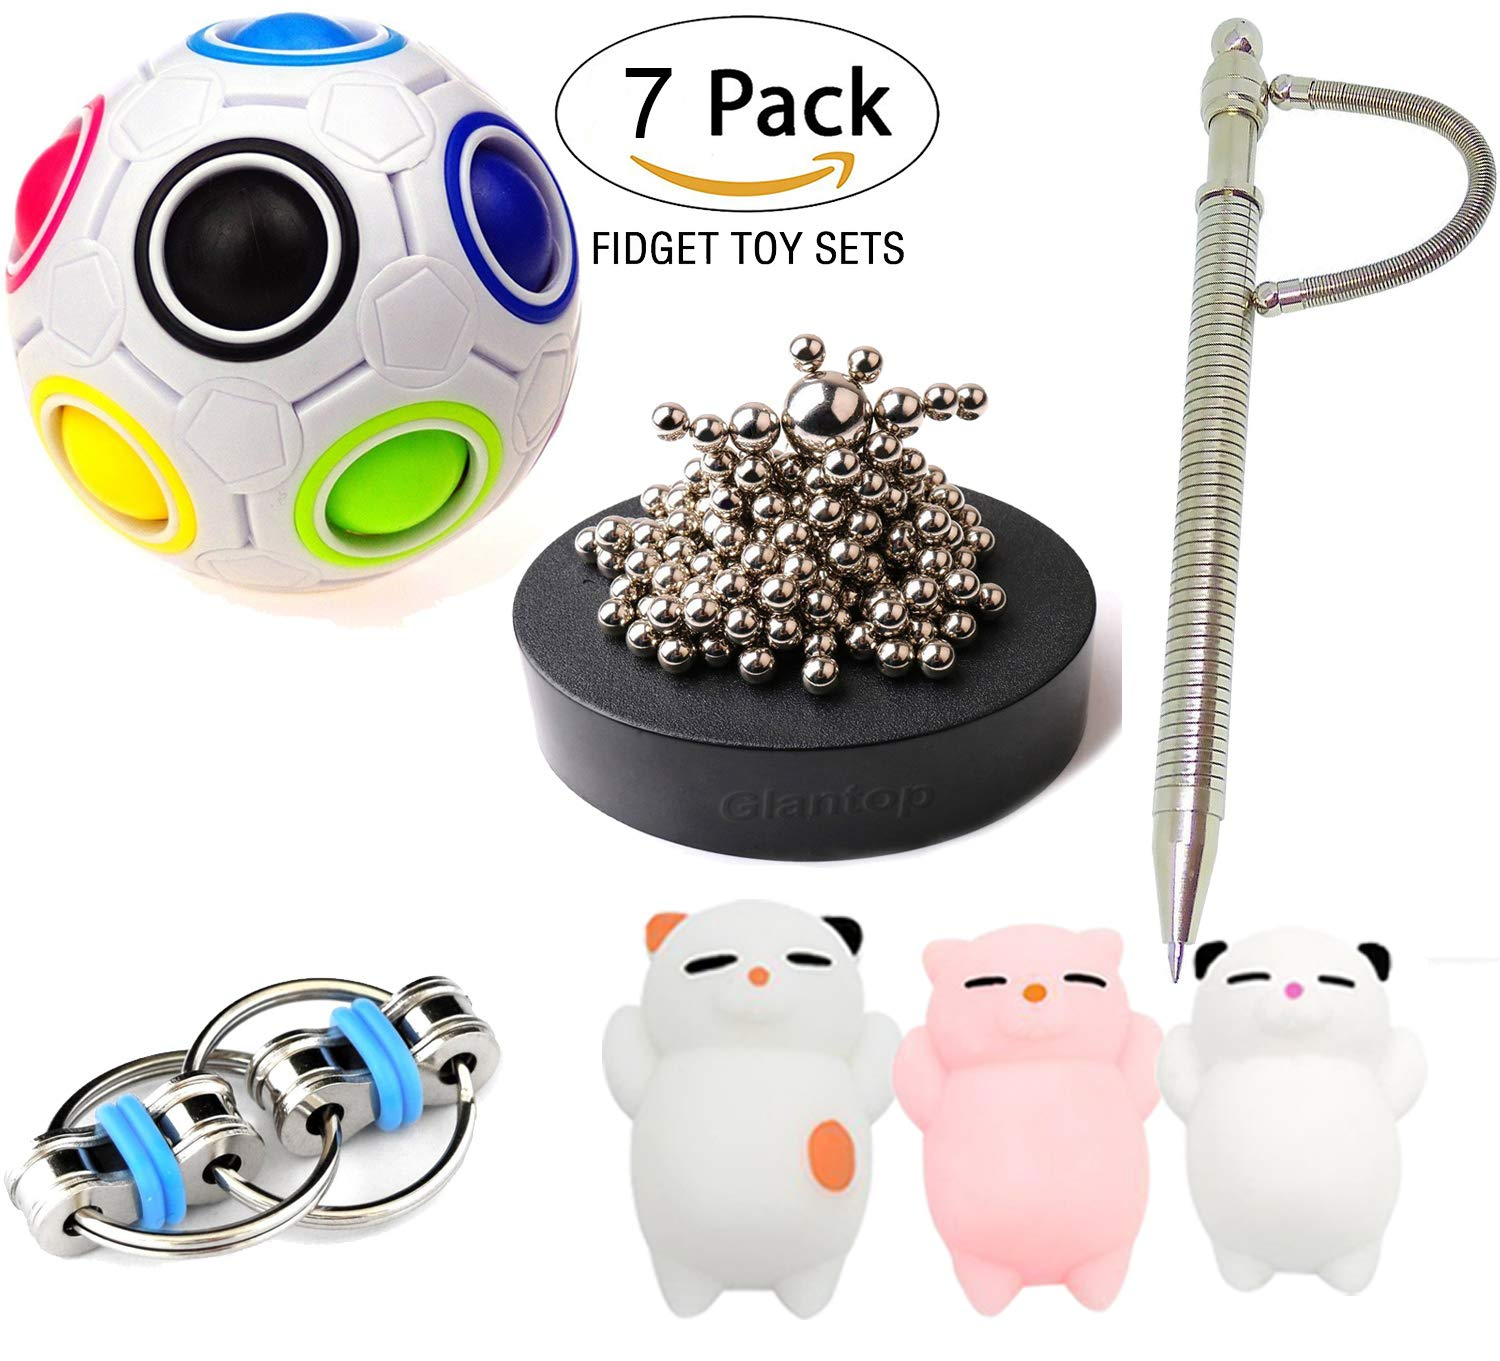 Leeche 7 Pack Bundle Sensory Toys Set-Magnetic Pen, Bike Chain/Magnetic Sculpture/Liquid Motion Timer and Twisted Fidget Toys Value Assortment-Stress Relax Toys for ADD ADHD Child&Adults